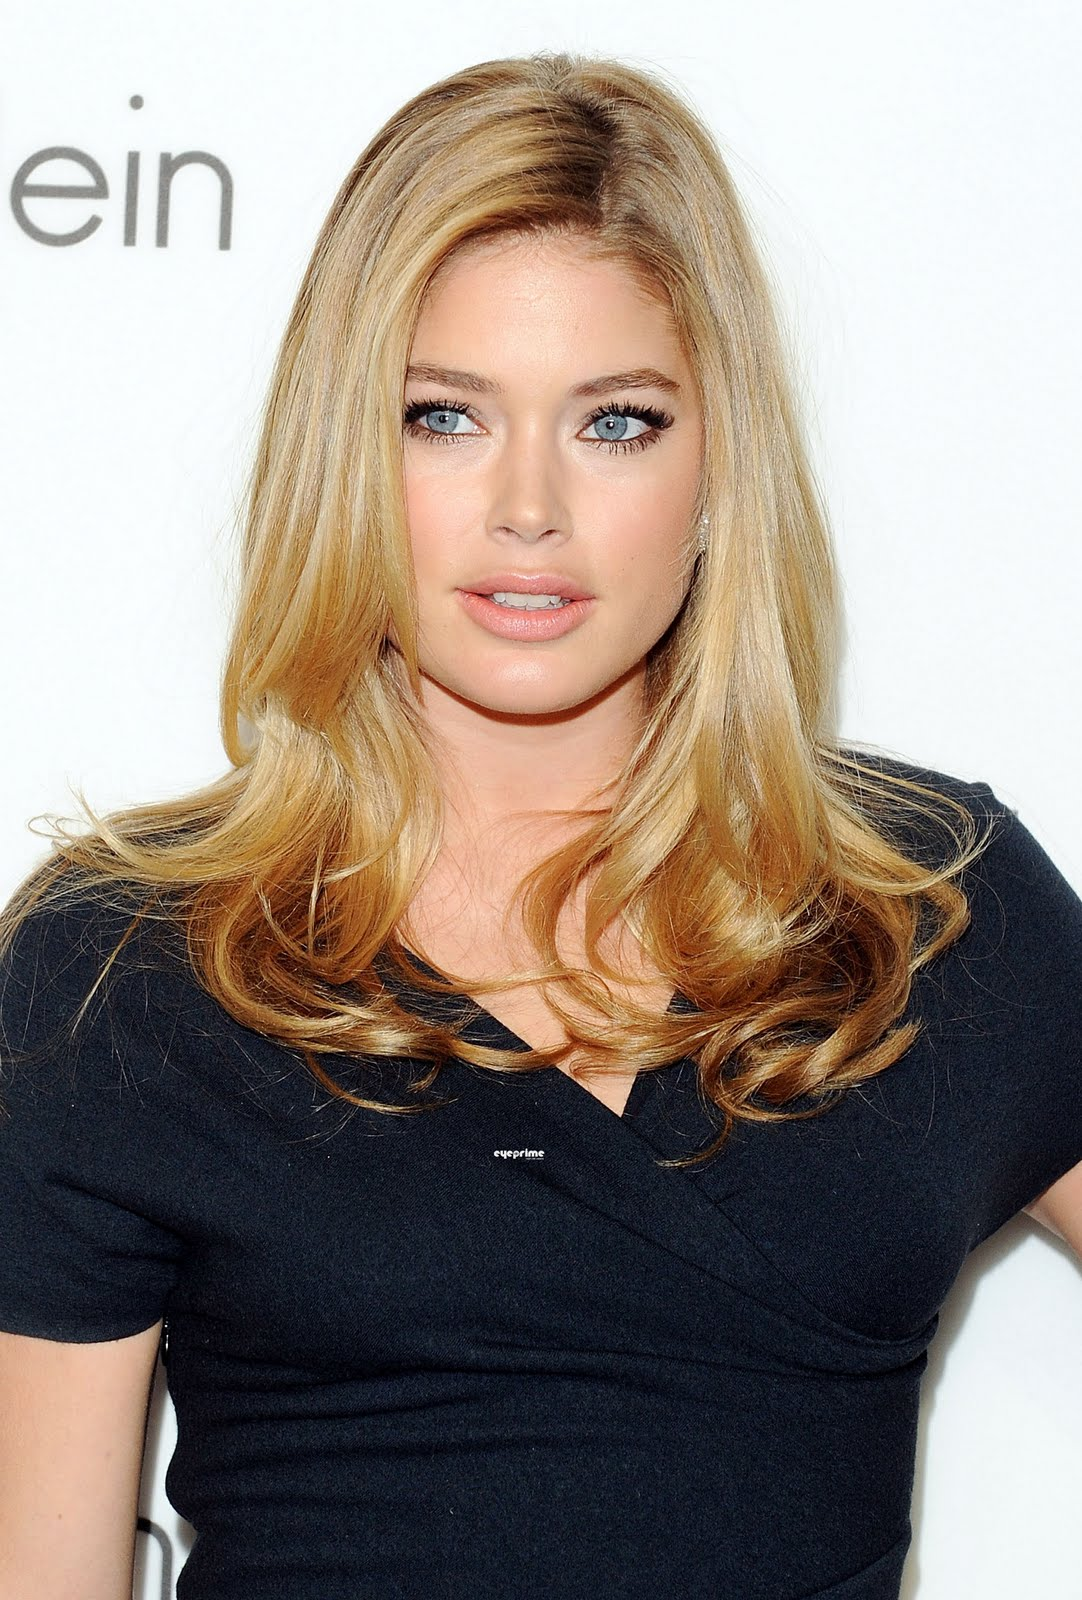 Doutzen Kroes Is A Dutch Model